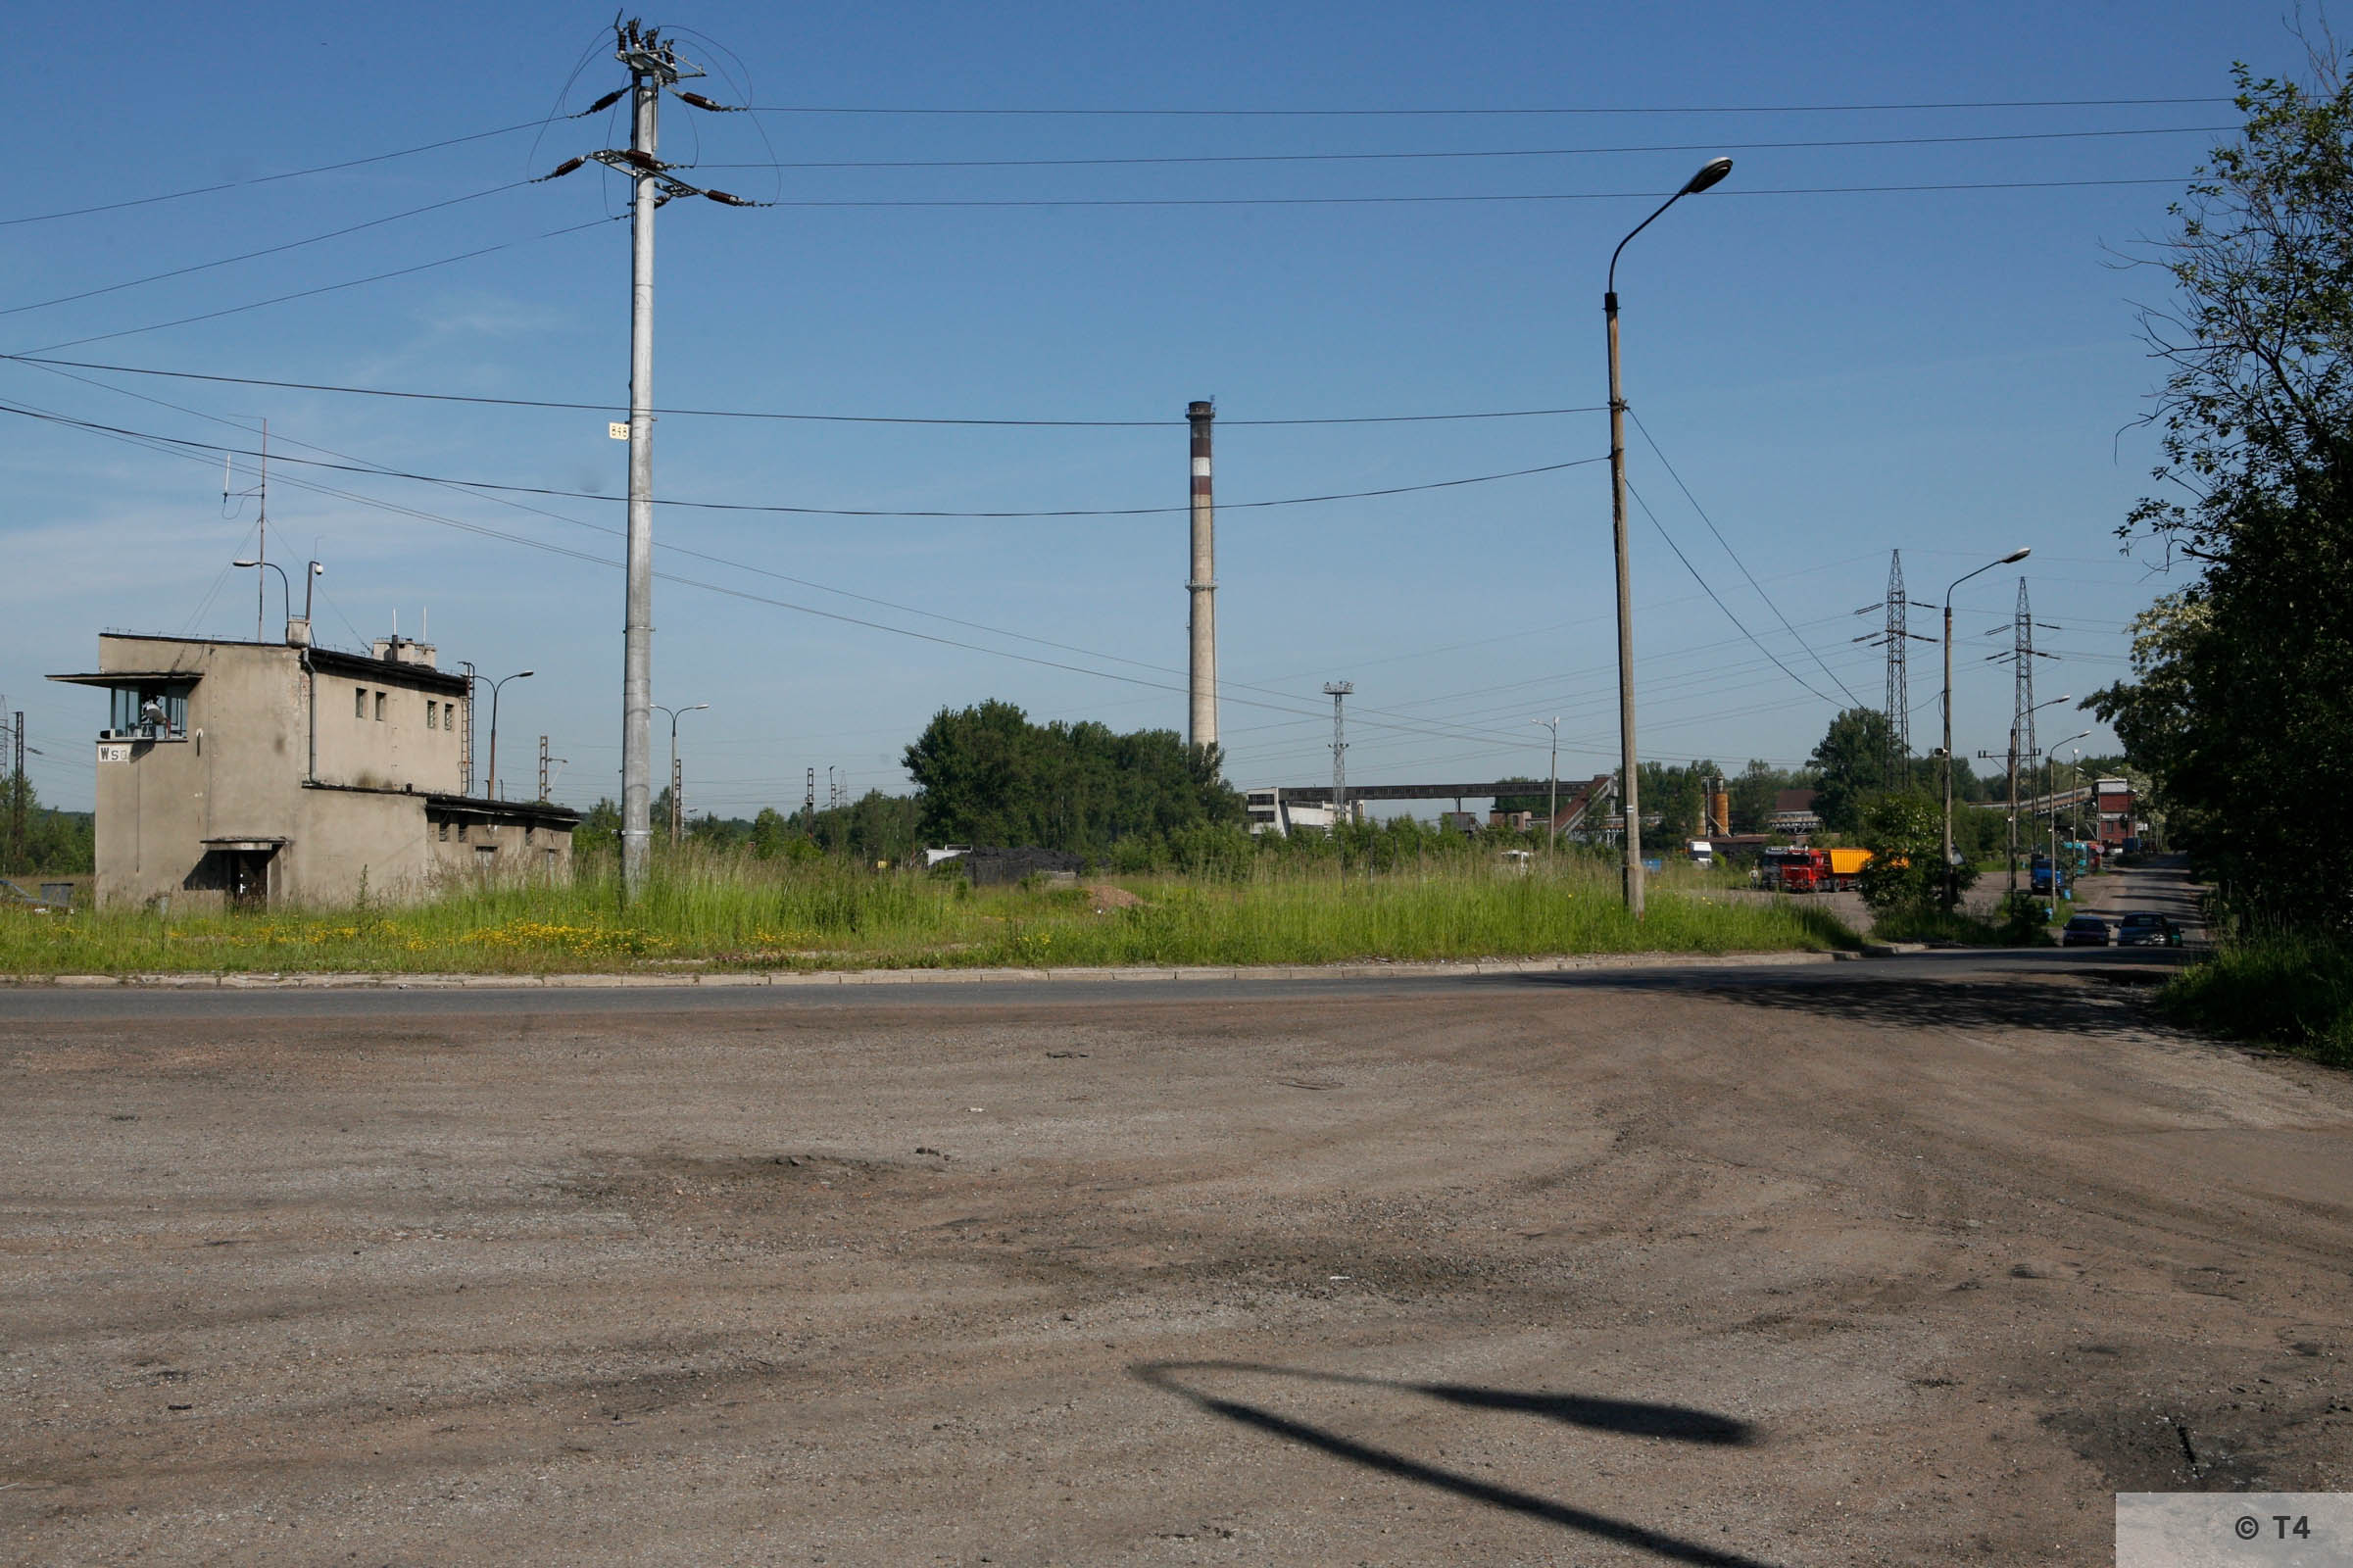 Railway junction and Wesola mine. 2006 T4 6836